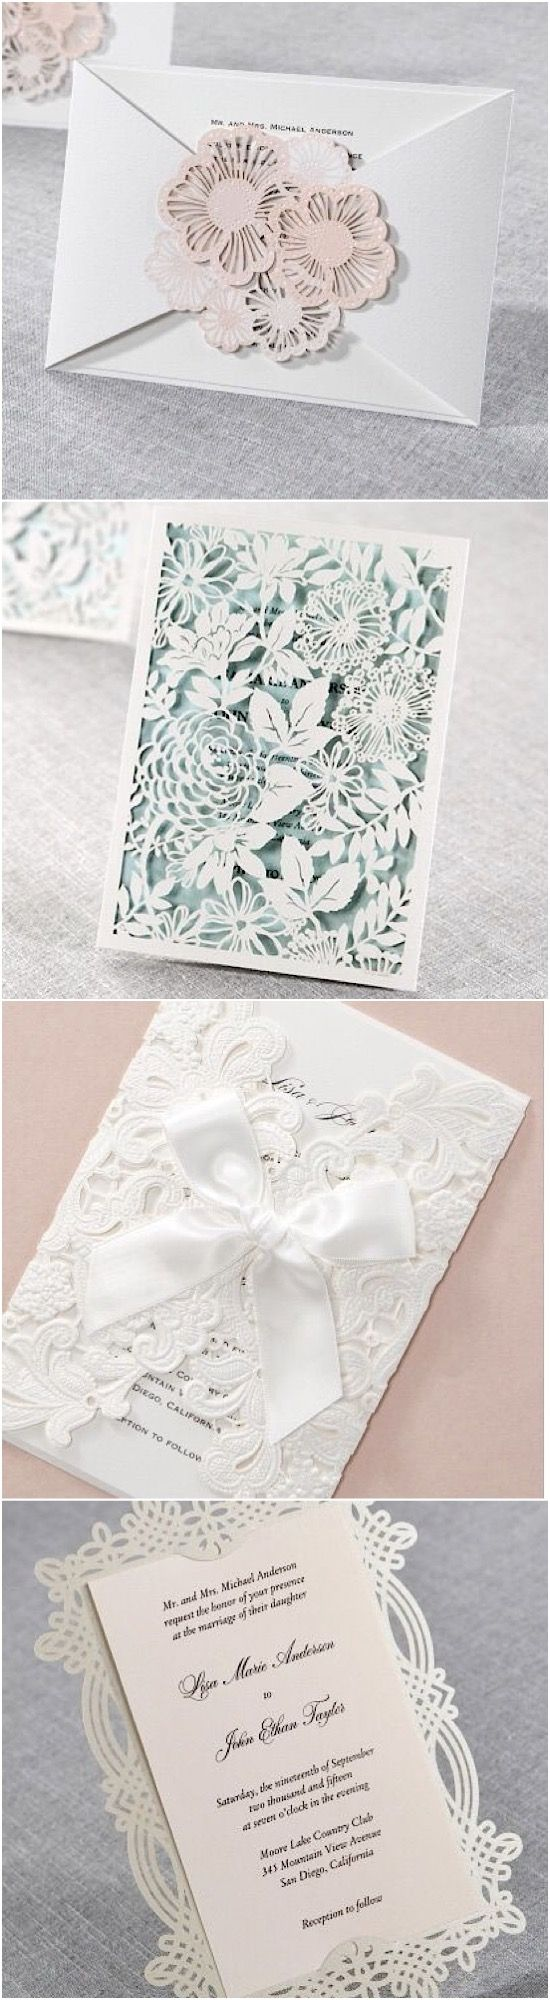 Best 25 Unique wedding invitations ideas on Pinterest  Unique invitations Creative wedding